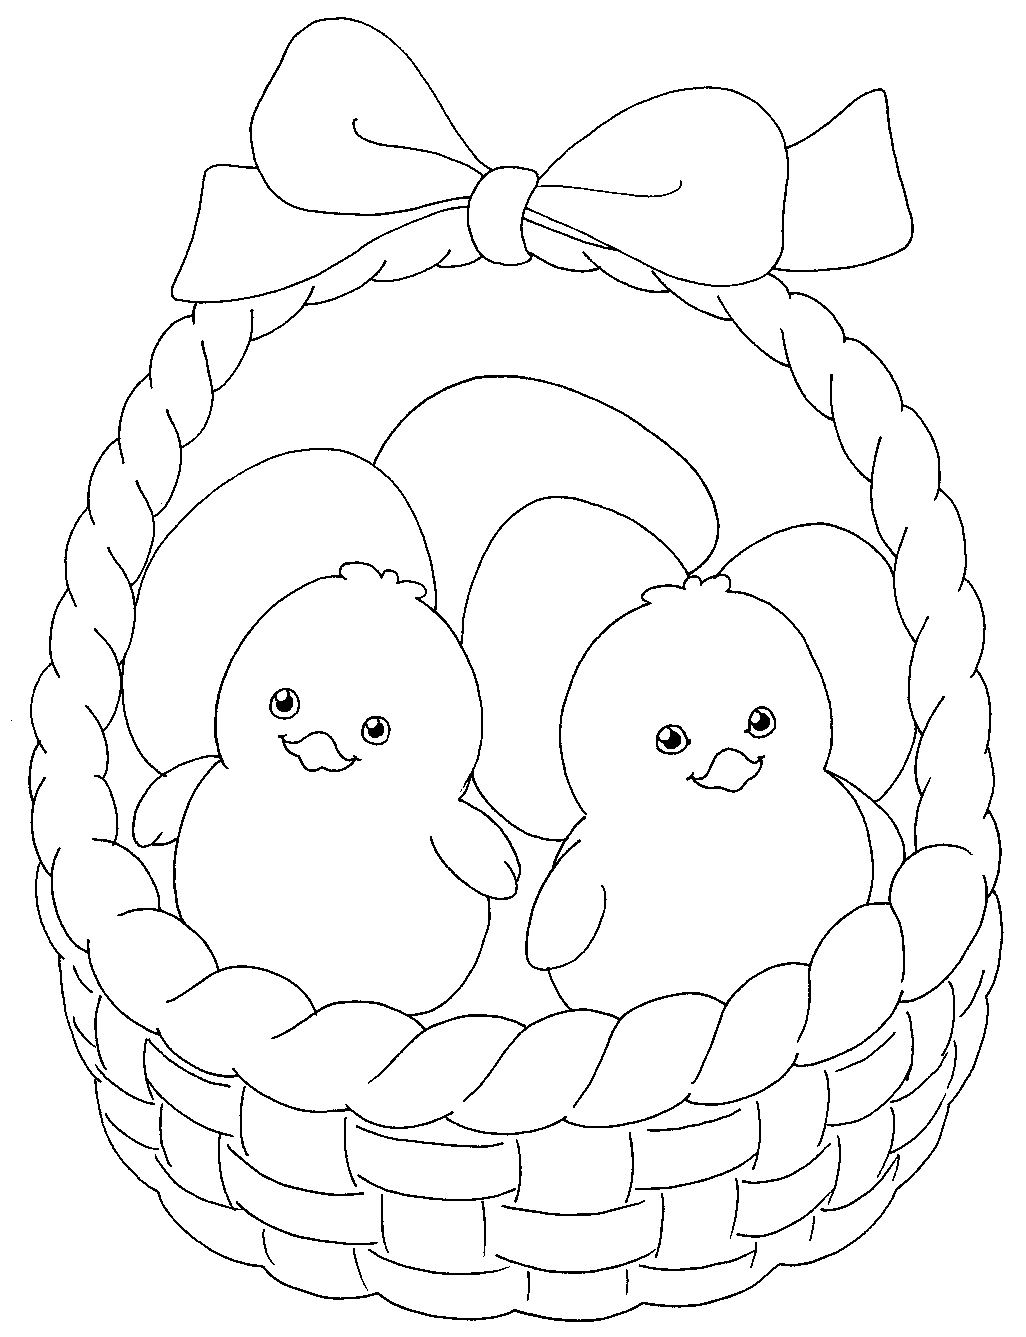 Chick Drawing Images At Getdrawings Com Free For Personal Use